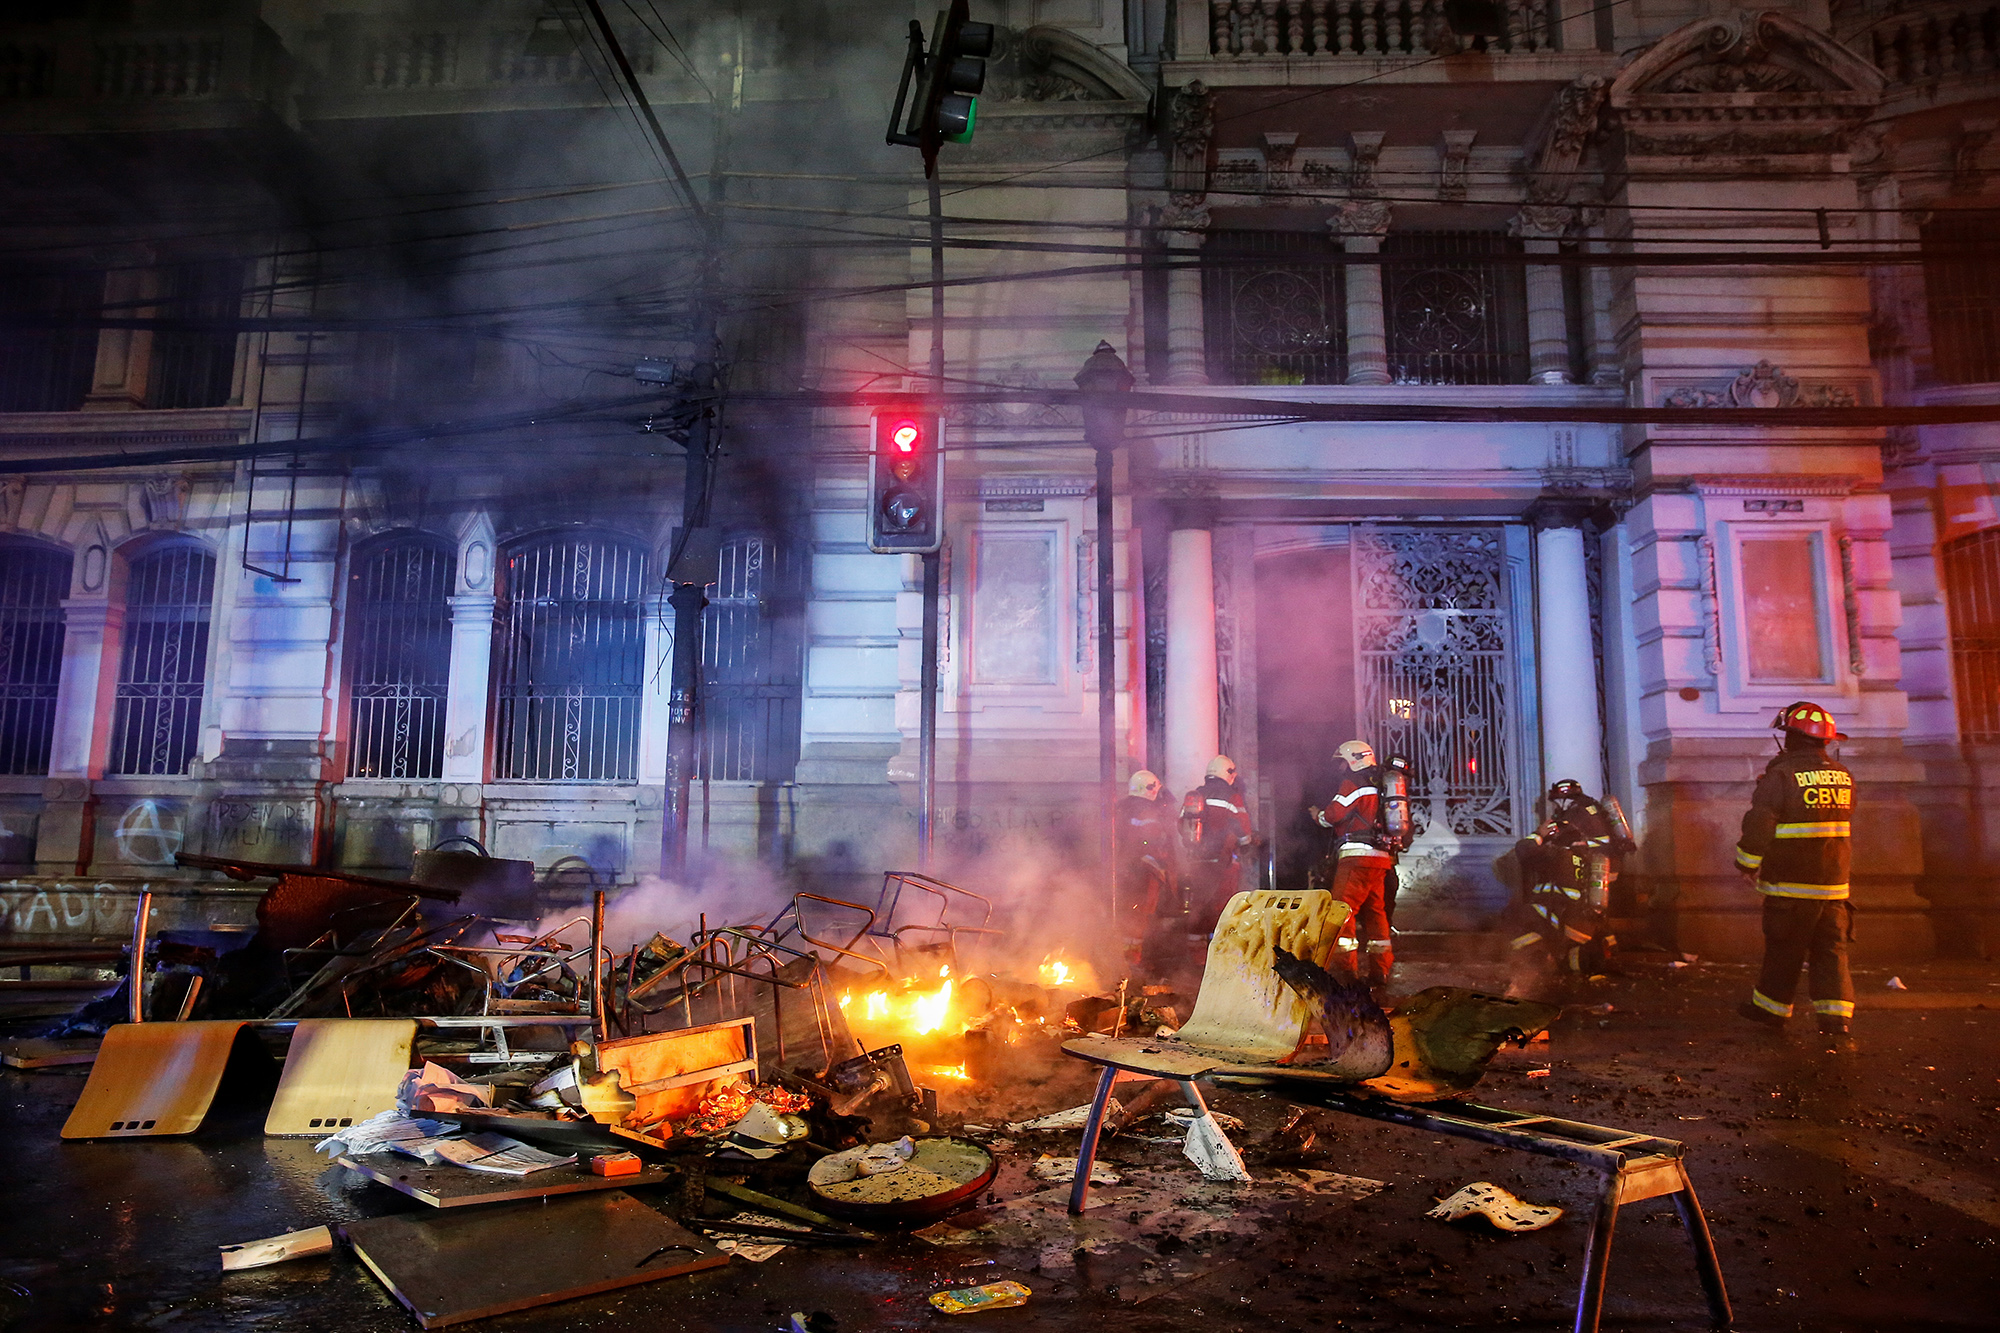 Firemen work near burnt furniture and objects outside the building of Chilean newspaper El Mercurio de Valparaiso during a protest against the government in Valparaiso, Chile